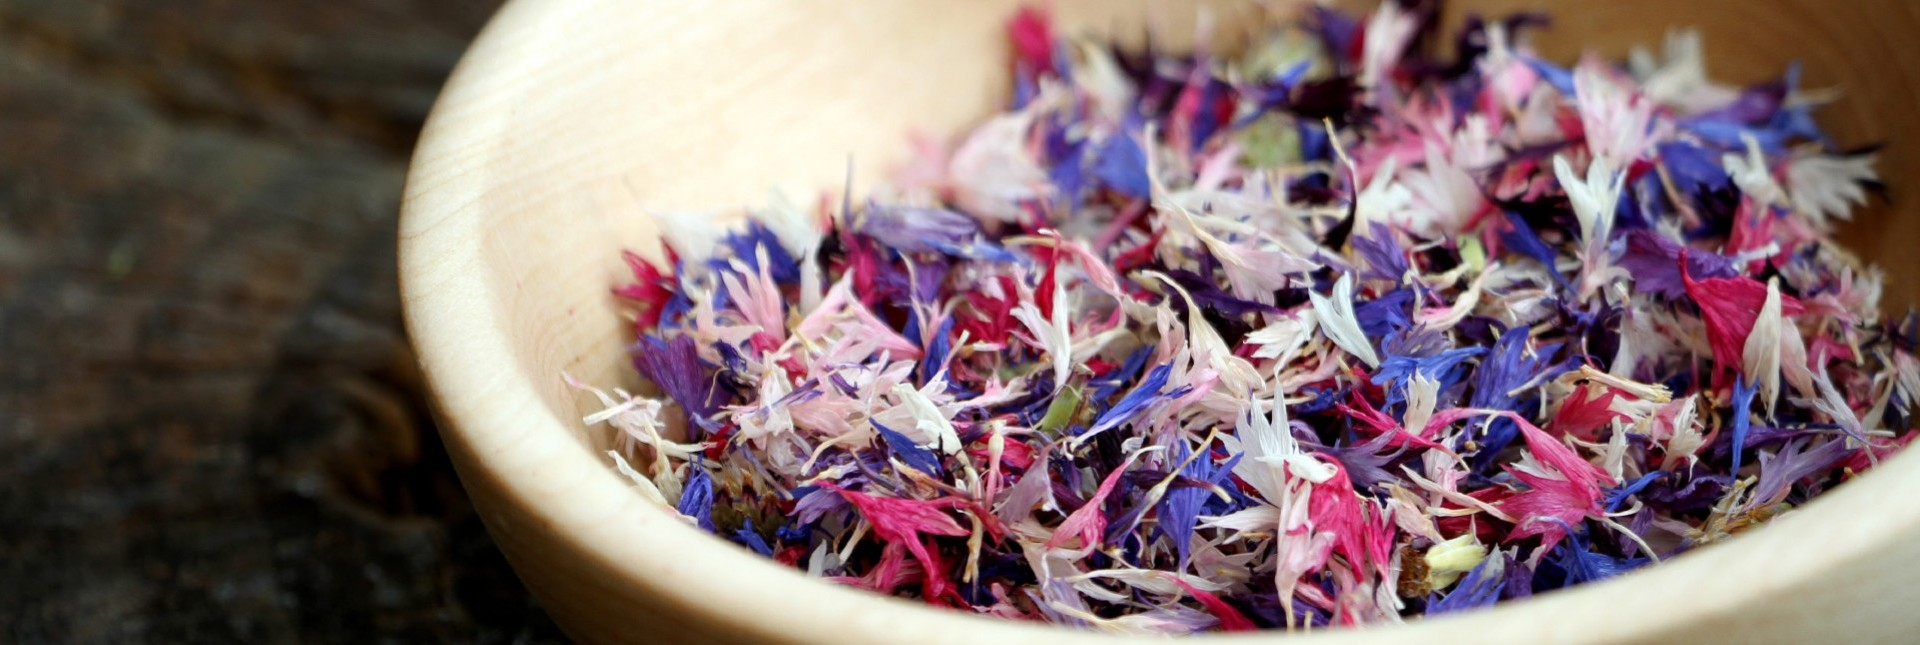 How to Eat Edible Flowers